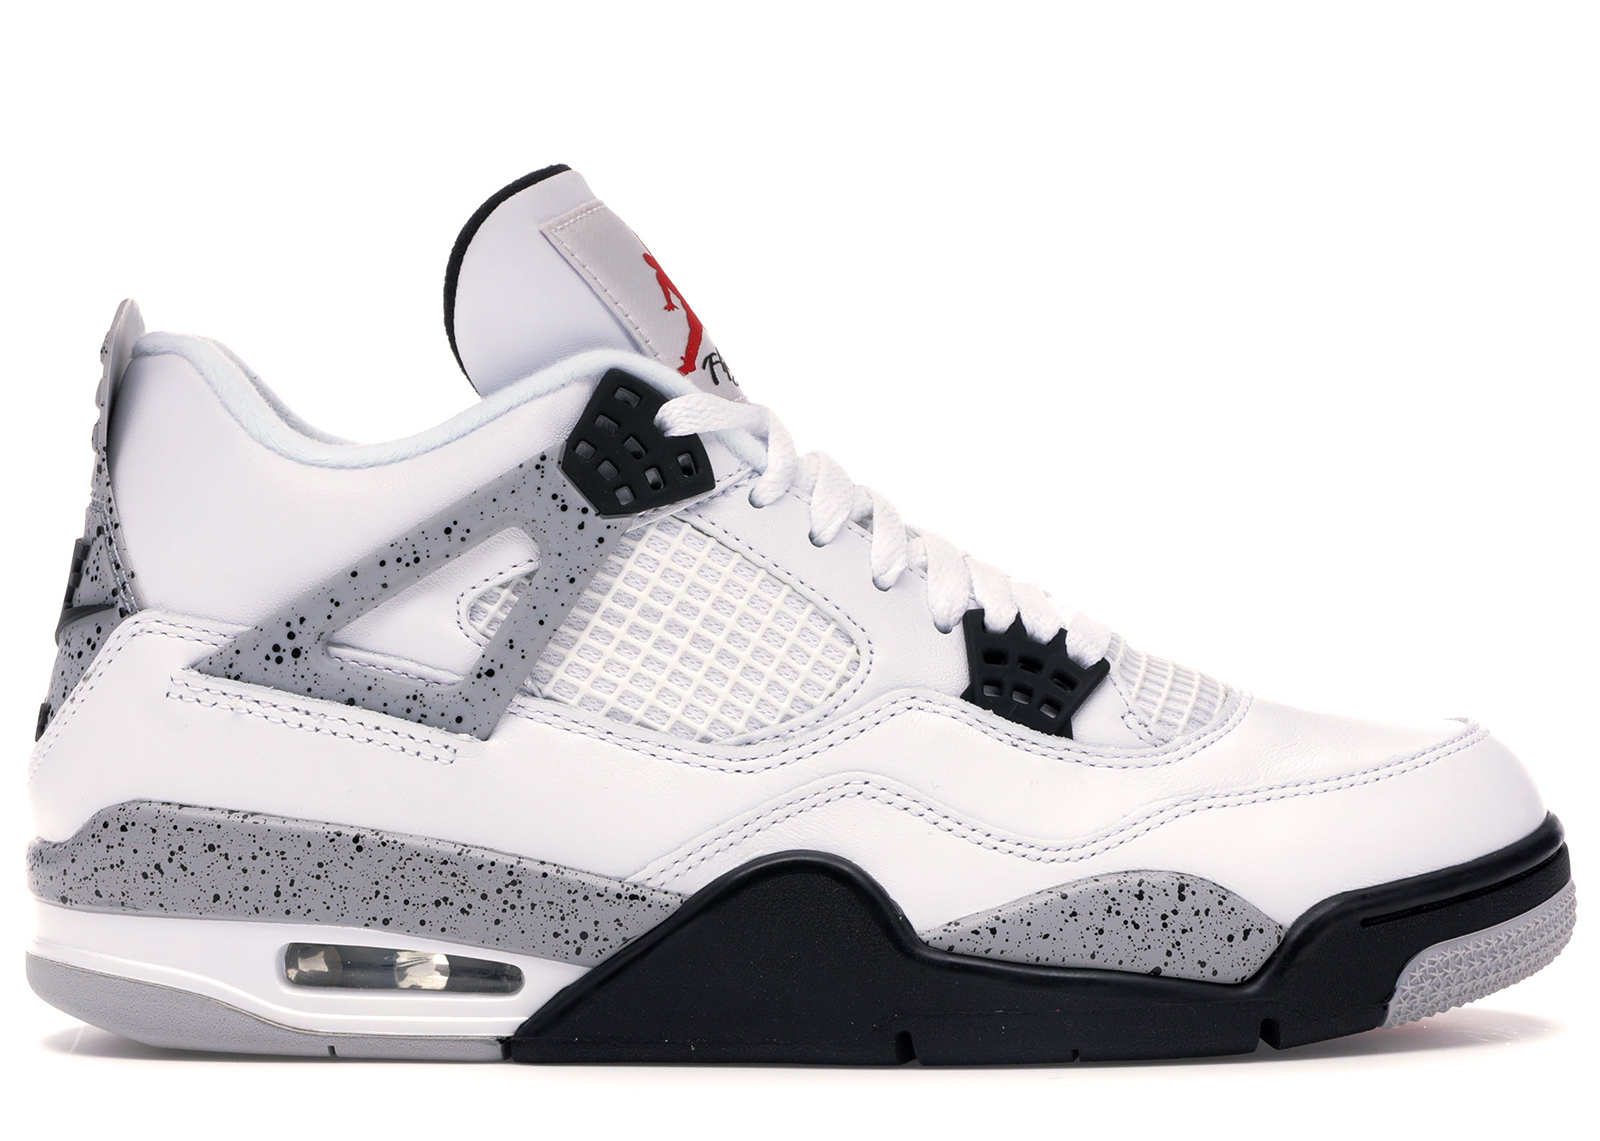 Jordan 4 Retro White Cement (2016)